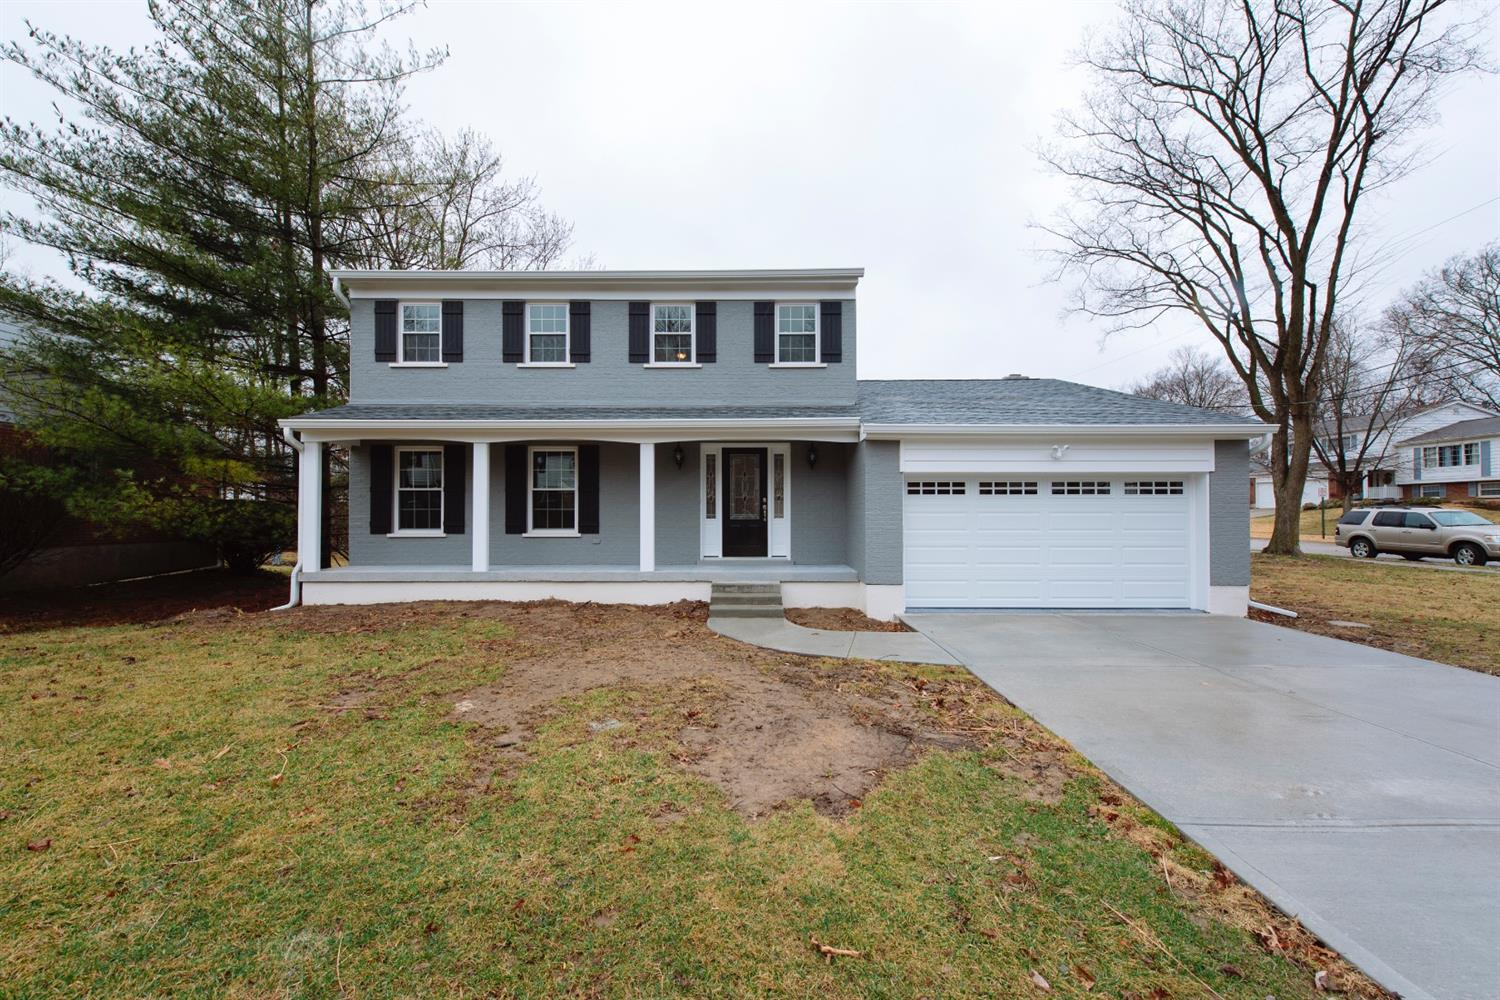 COMPLETELY Renovated!! NEW Roof, Gutters, A/C, Furnace, Windows, Back Deck, 150 amp, Cabinets, Granite Countertops, and more!! Sherwood Forest Subdivision, Forest Hills Schools, 3 bed, 3 bath, beautiful home! This is a show piece and a must see!